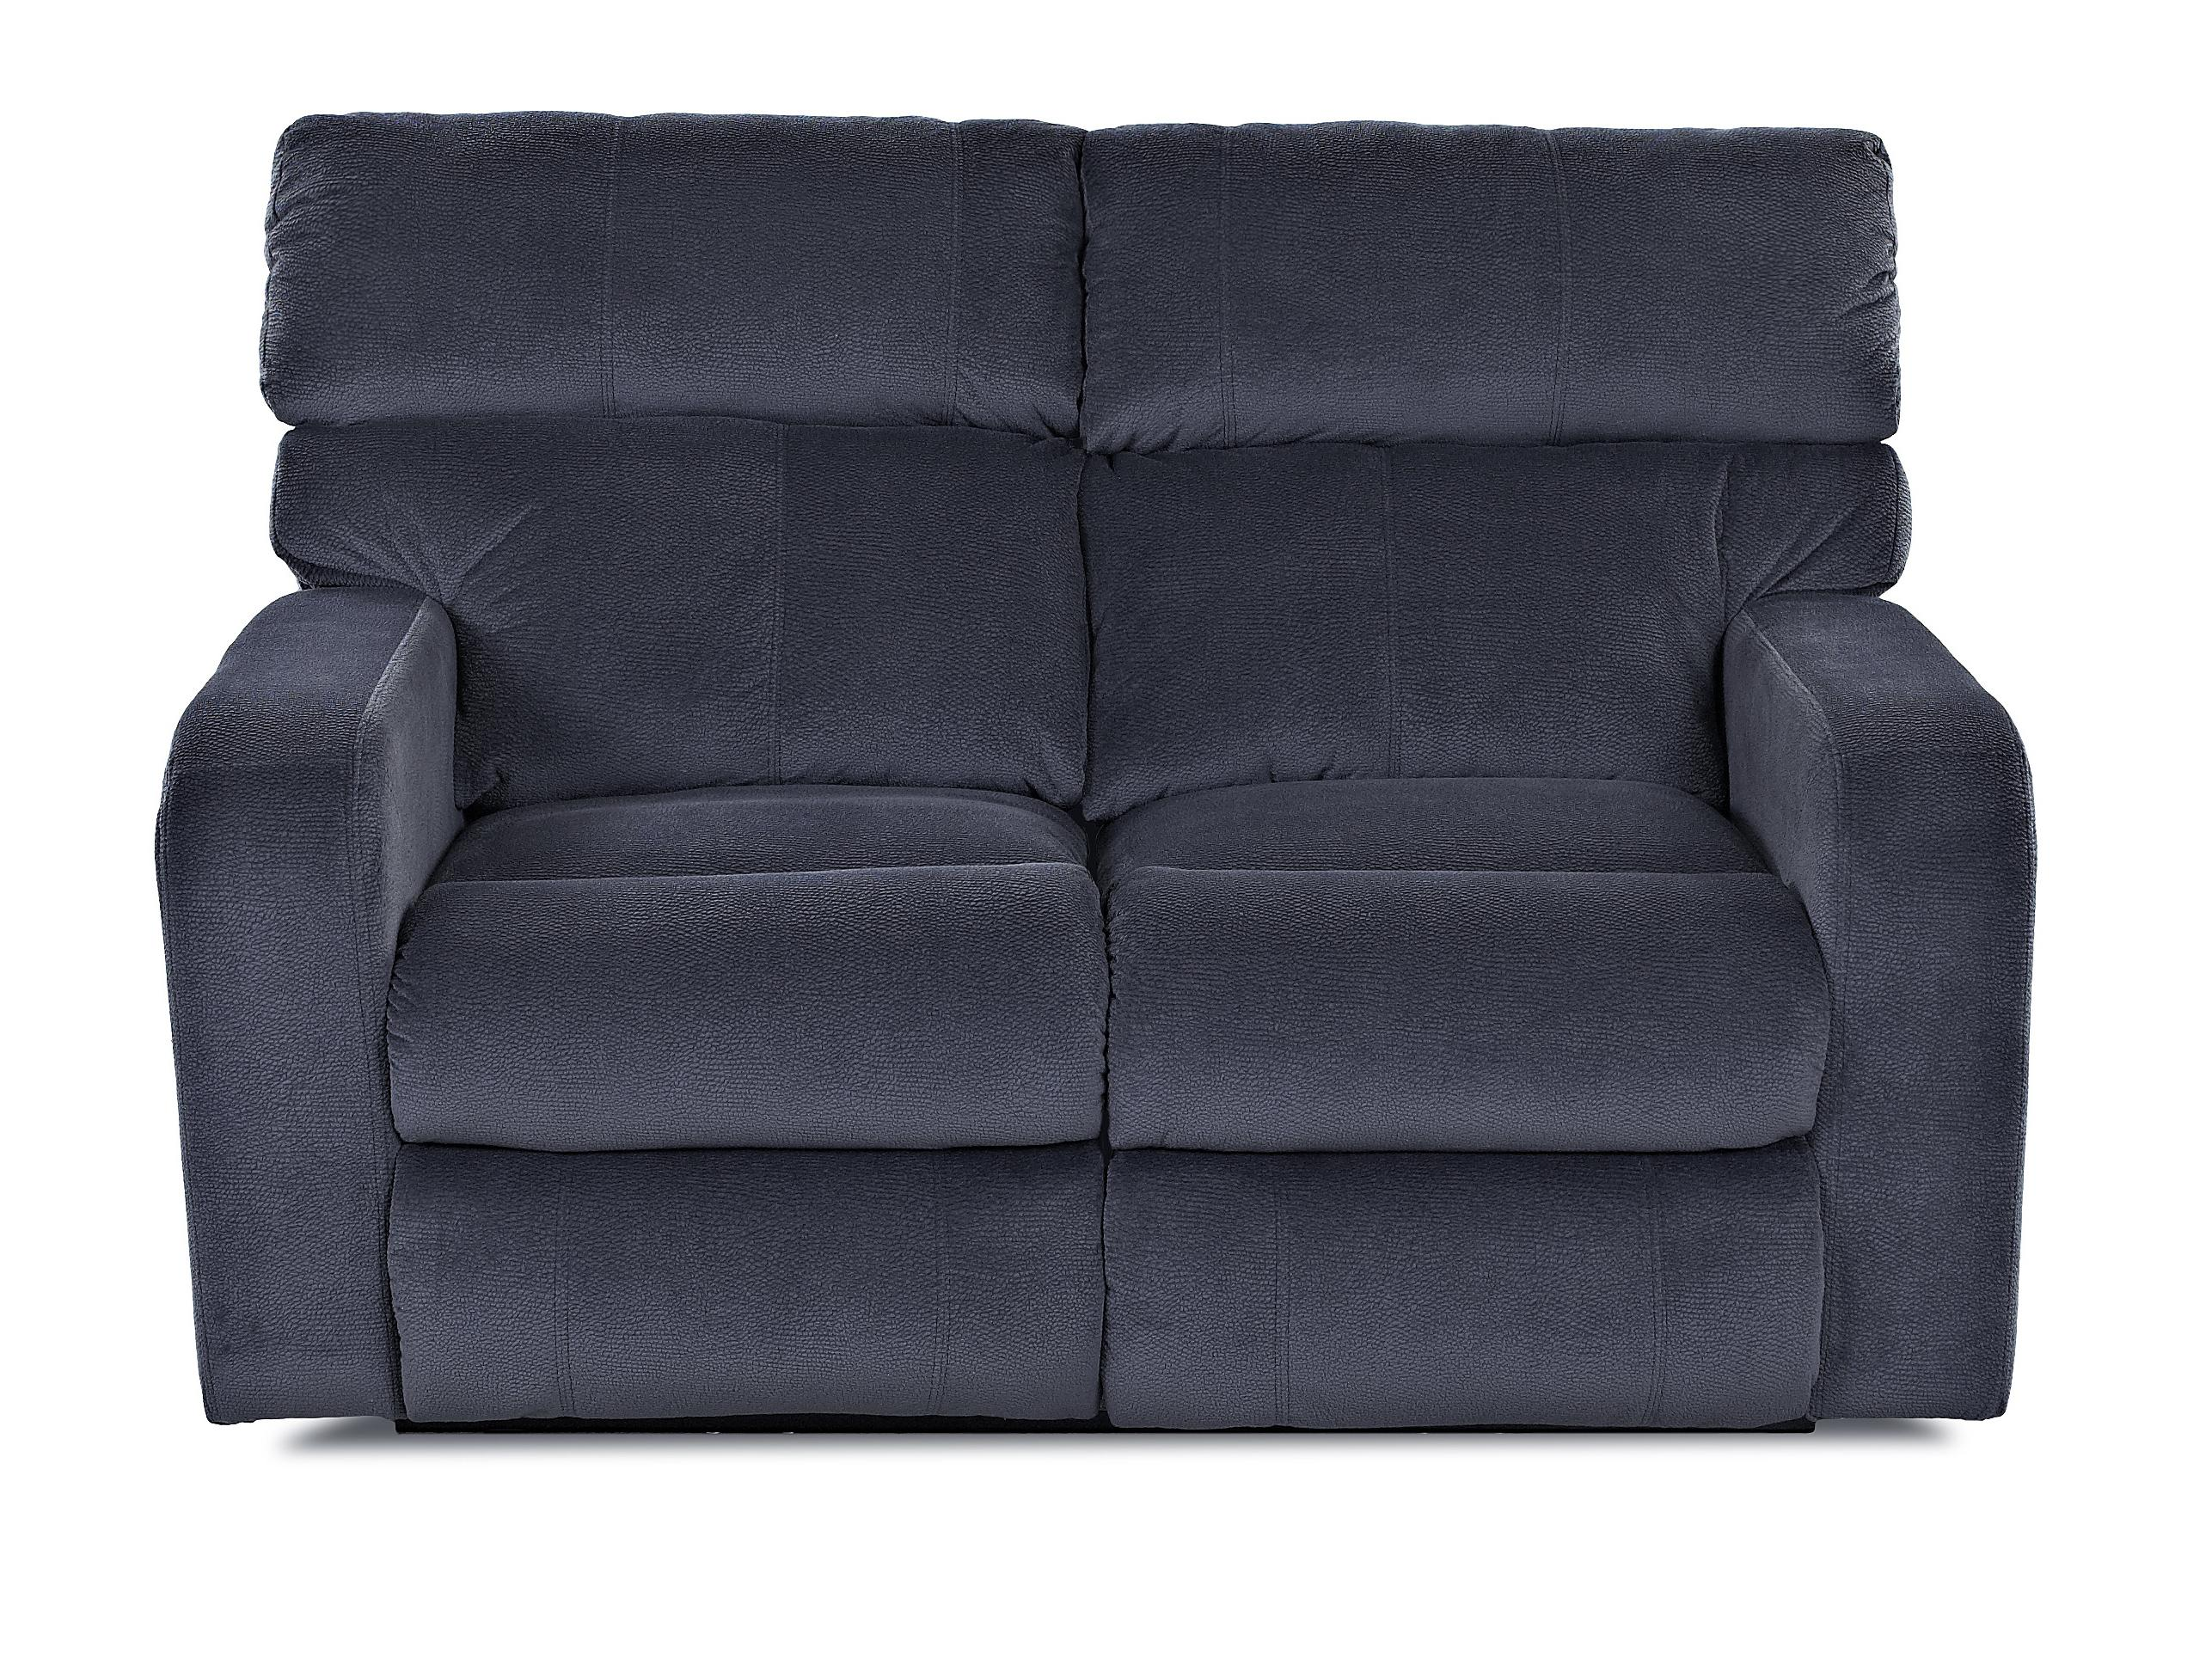 Klaussner Bradford Casual Reclining Loveseat - Item Number: 40203 RLS